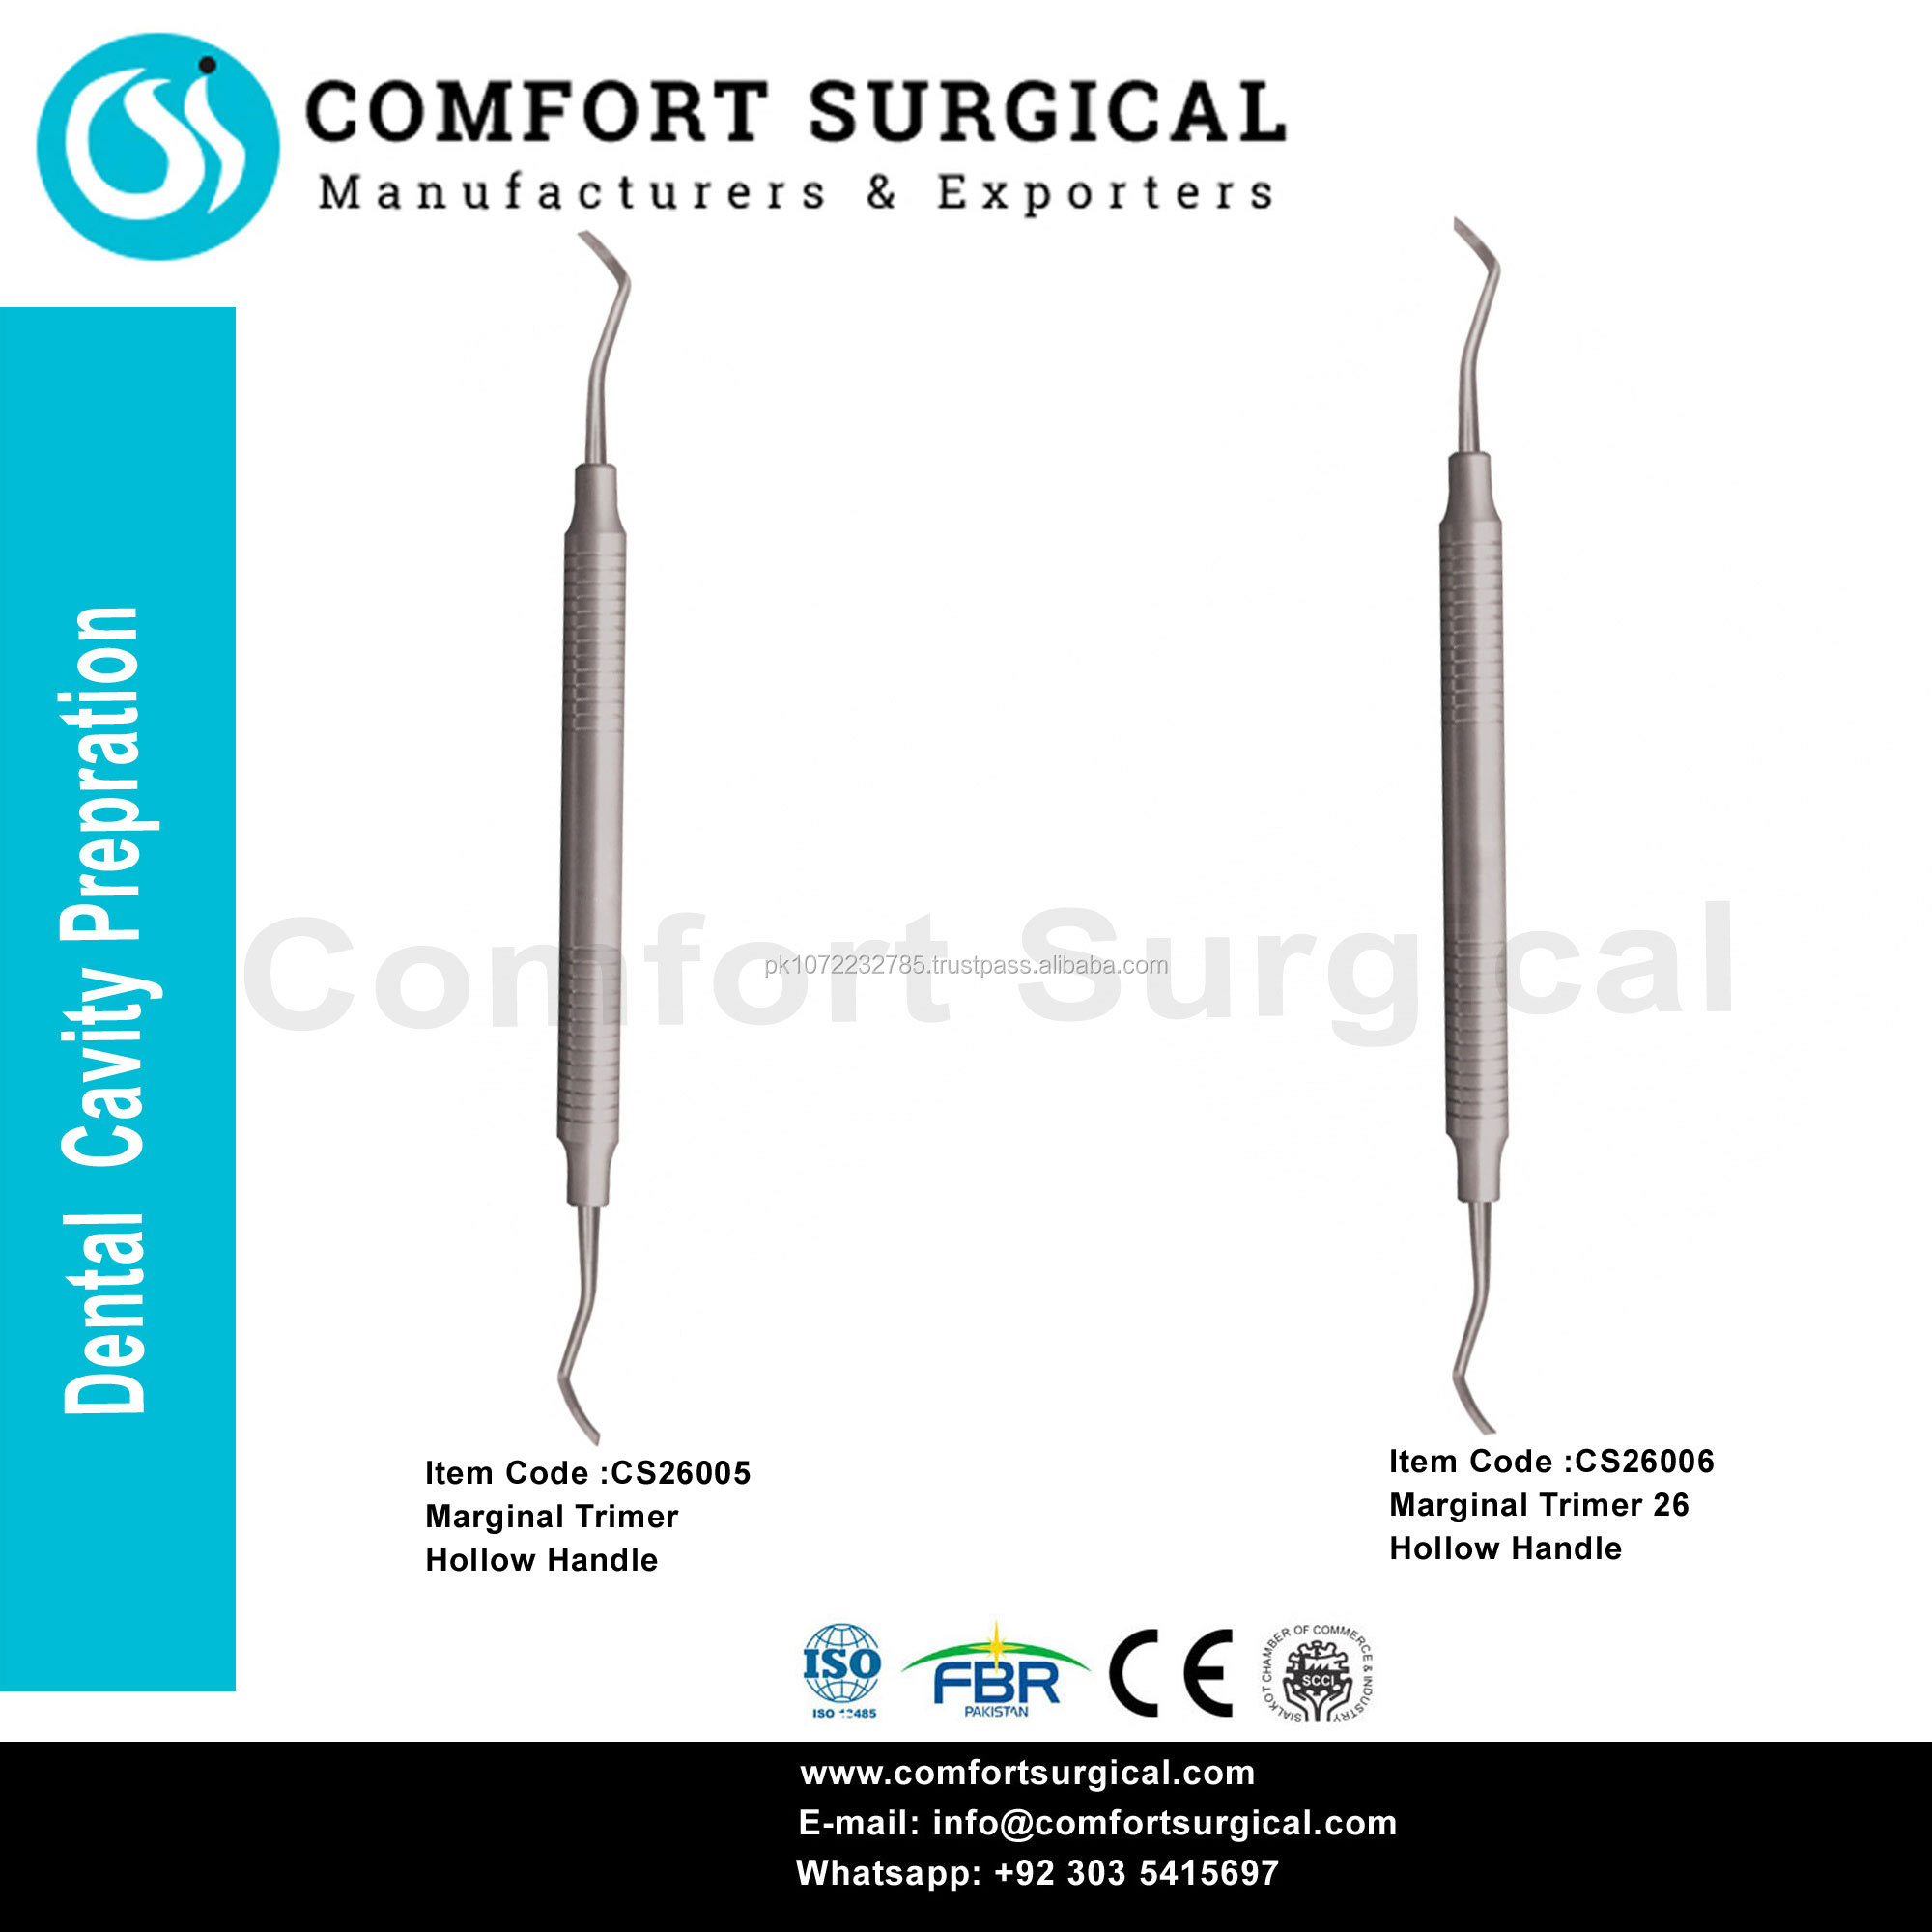 Dental Cavity Prepration Instruments Marginal Trimer 27, Marginal Trimer 26.Hollow Handle CE ISO 13485 Approved